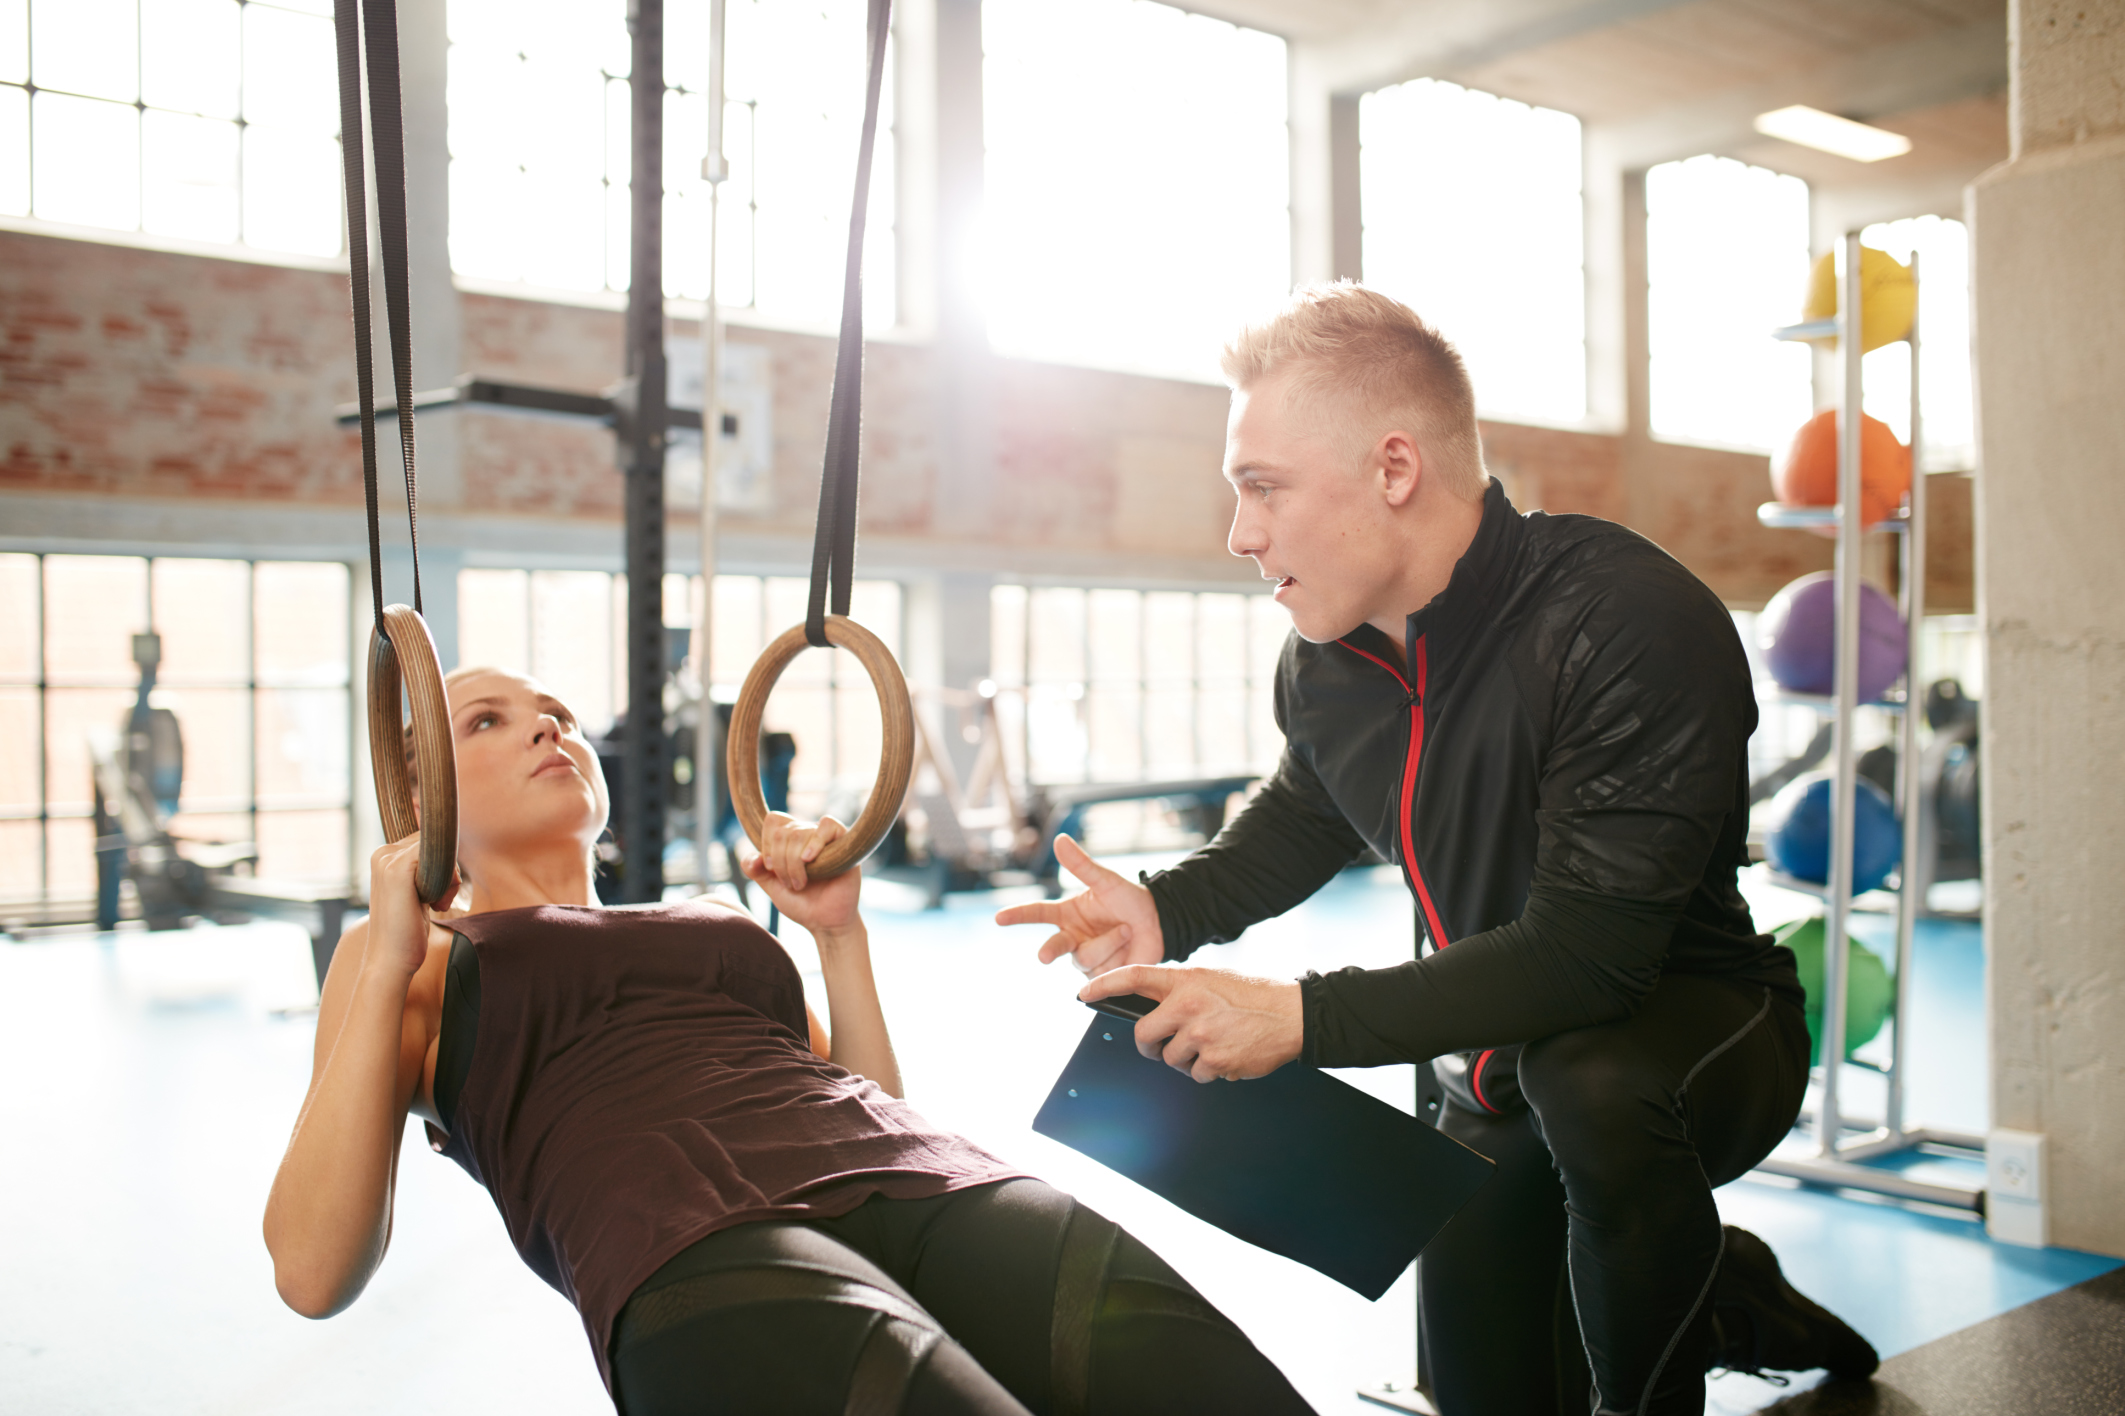 Personal trainer history livestrong xflitez Gallery